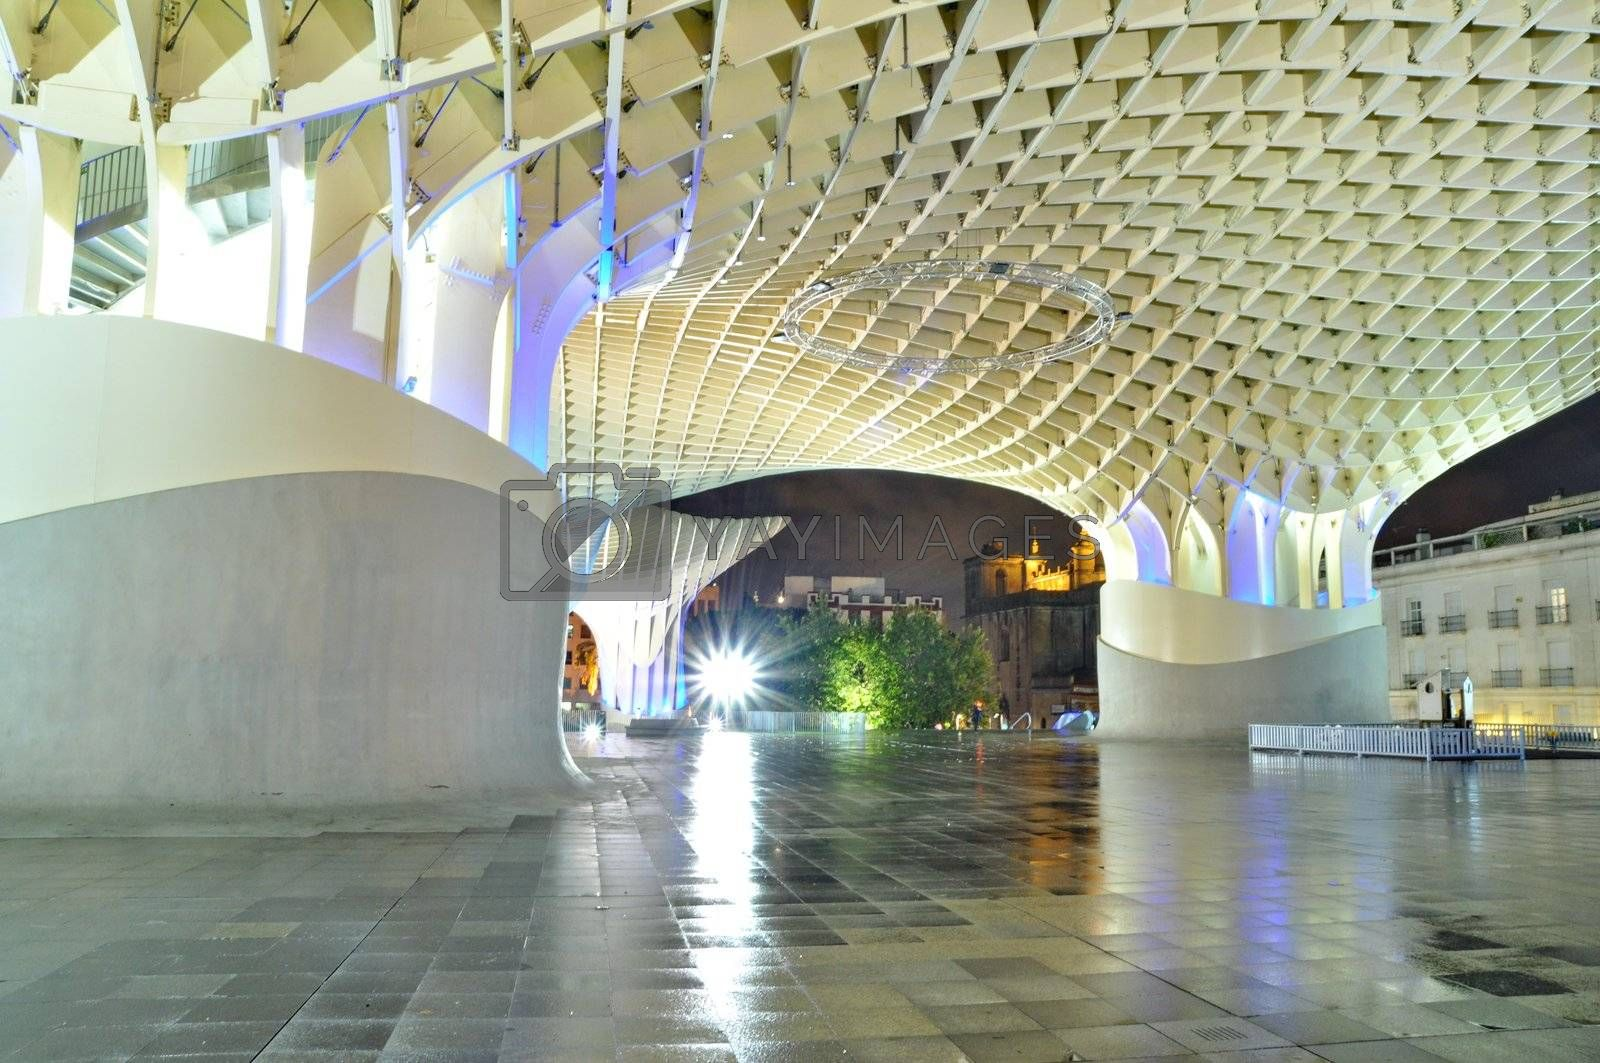 SEVILLA,SPAIN -SEPTEMBER 27: Metropol Parasol in Plaza de la Encarnacion on September 27, 2012 in Sevilla,Spain. J. Mayer H. architects, it is made from bonded timber with a polyurethane coating.